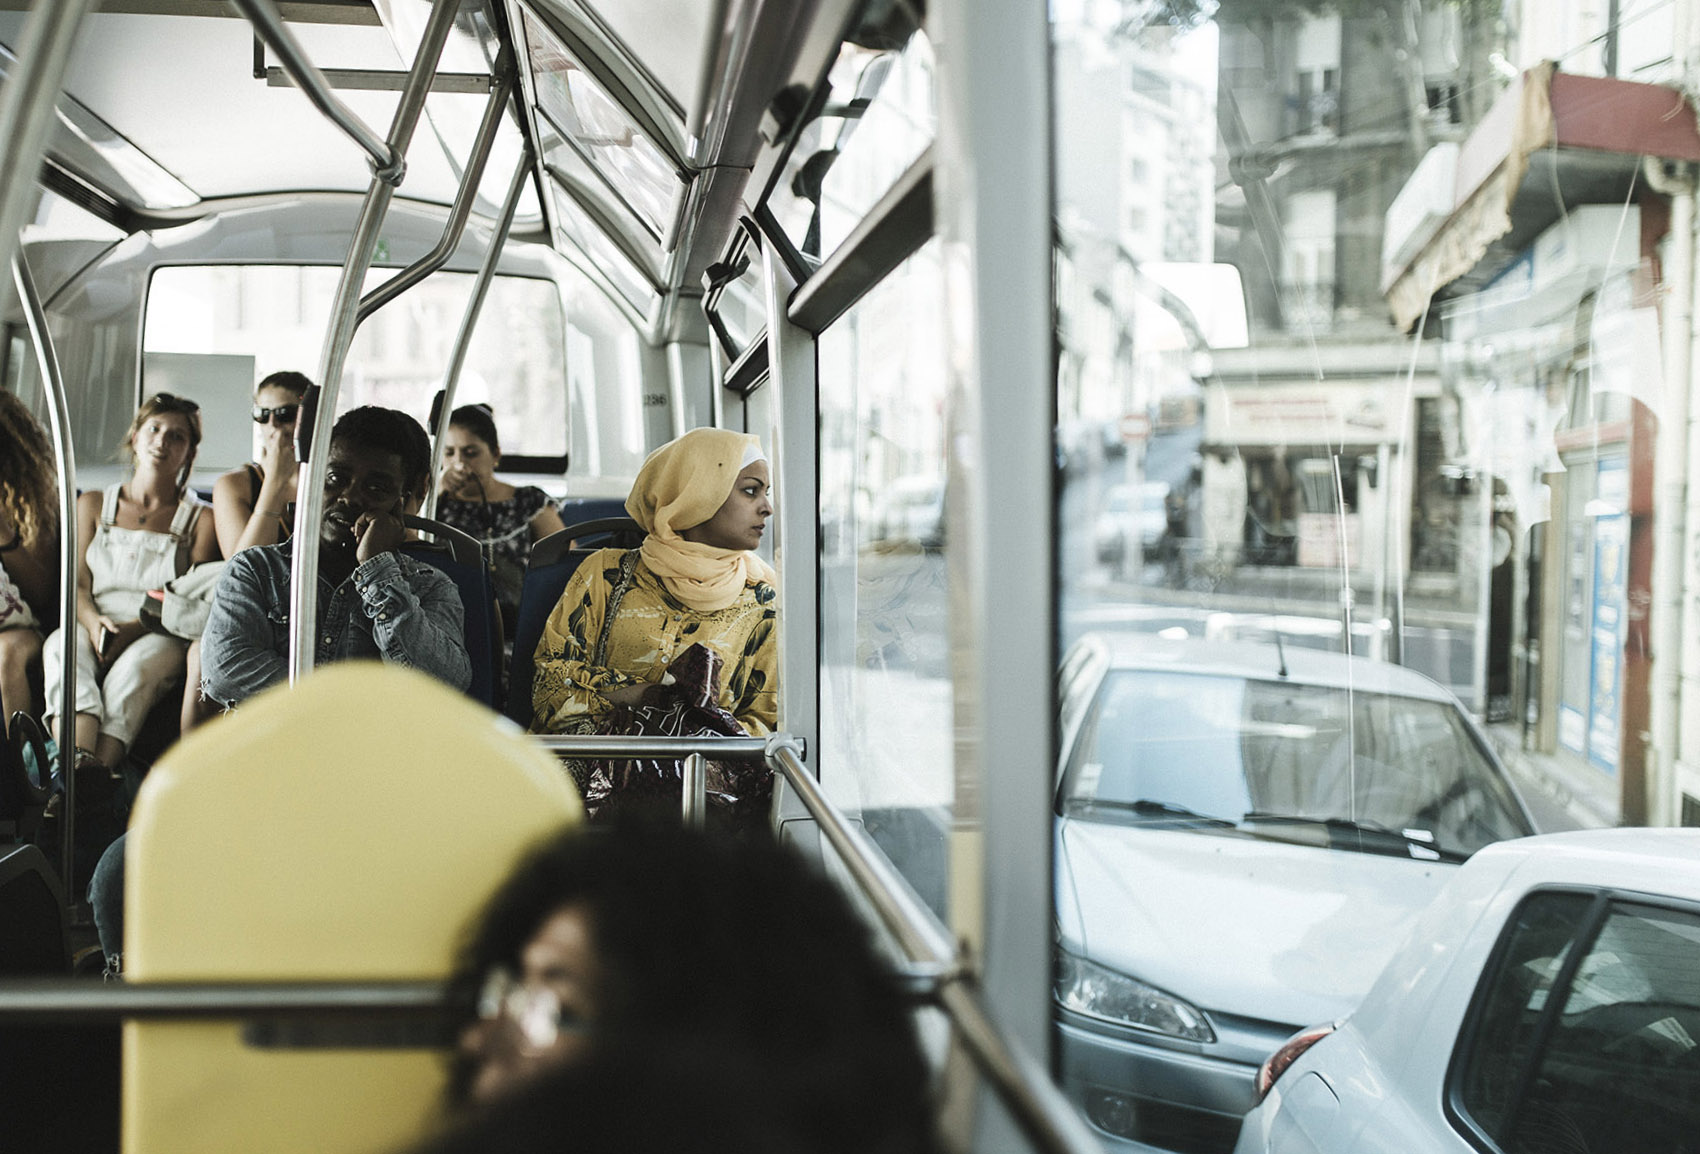 A woman watches the city from a bus window.